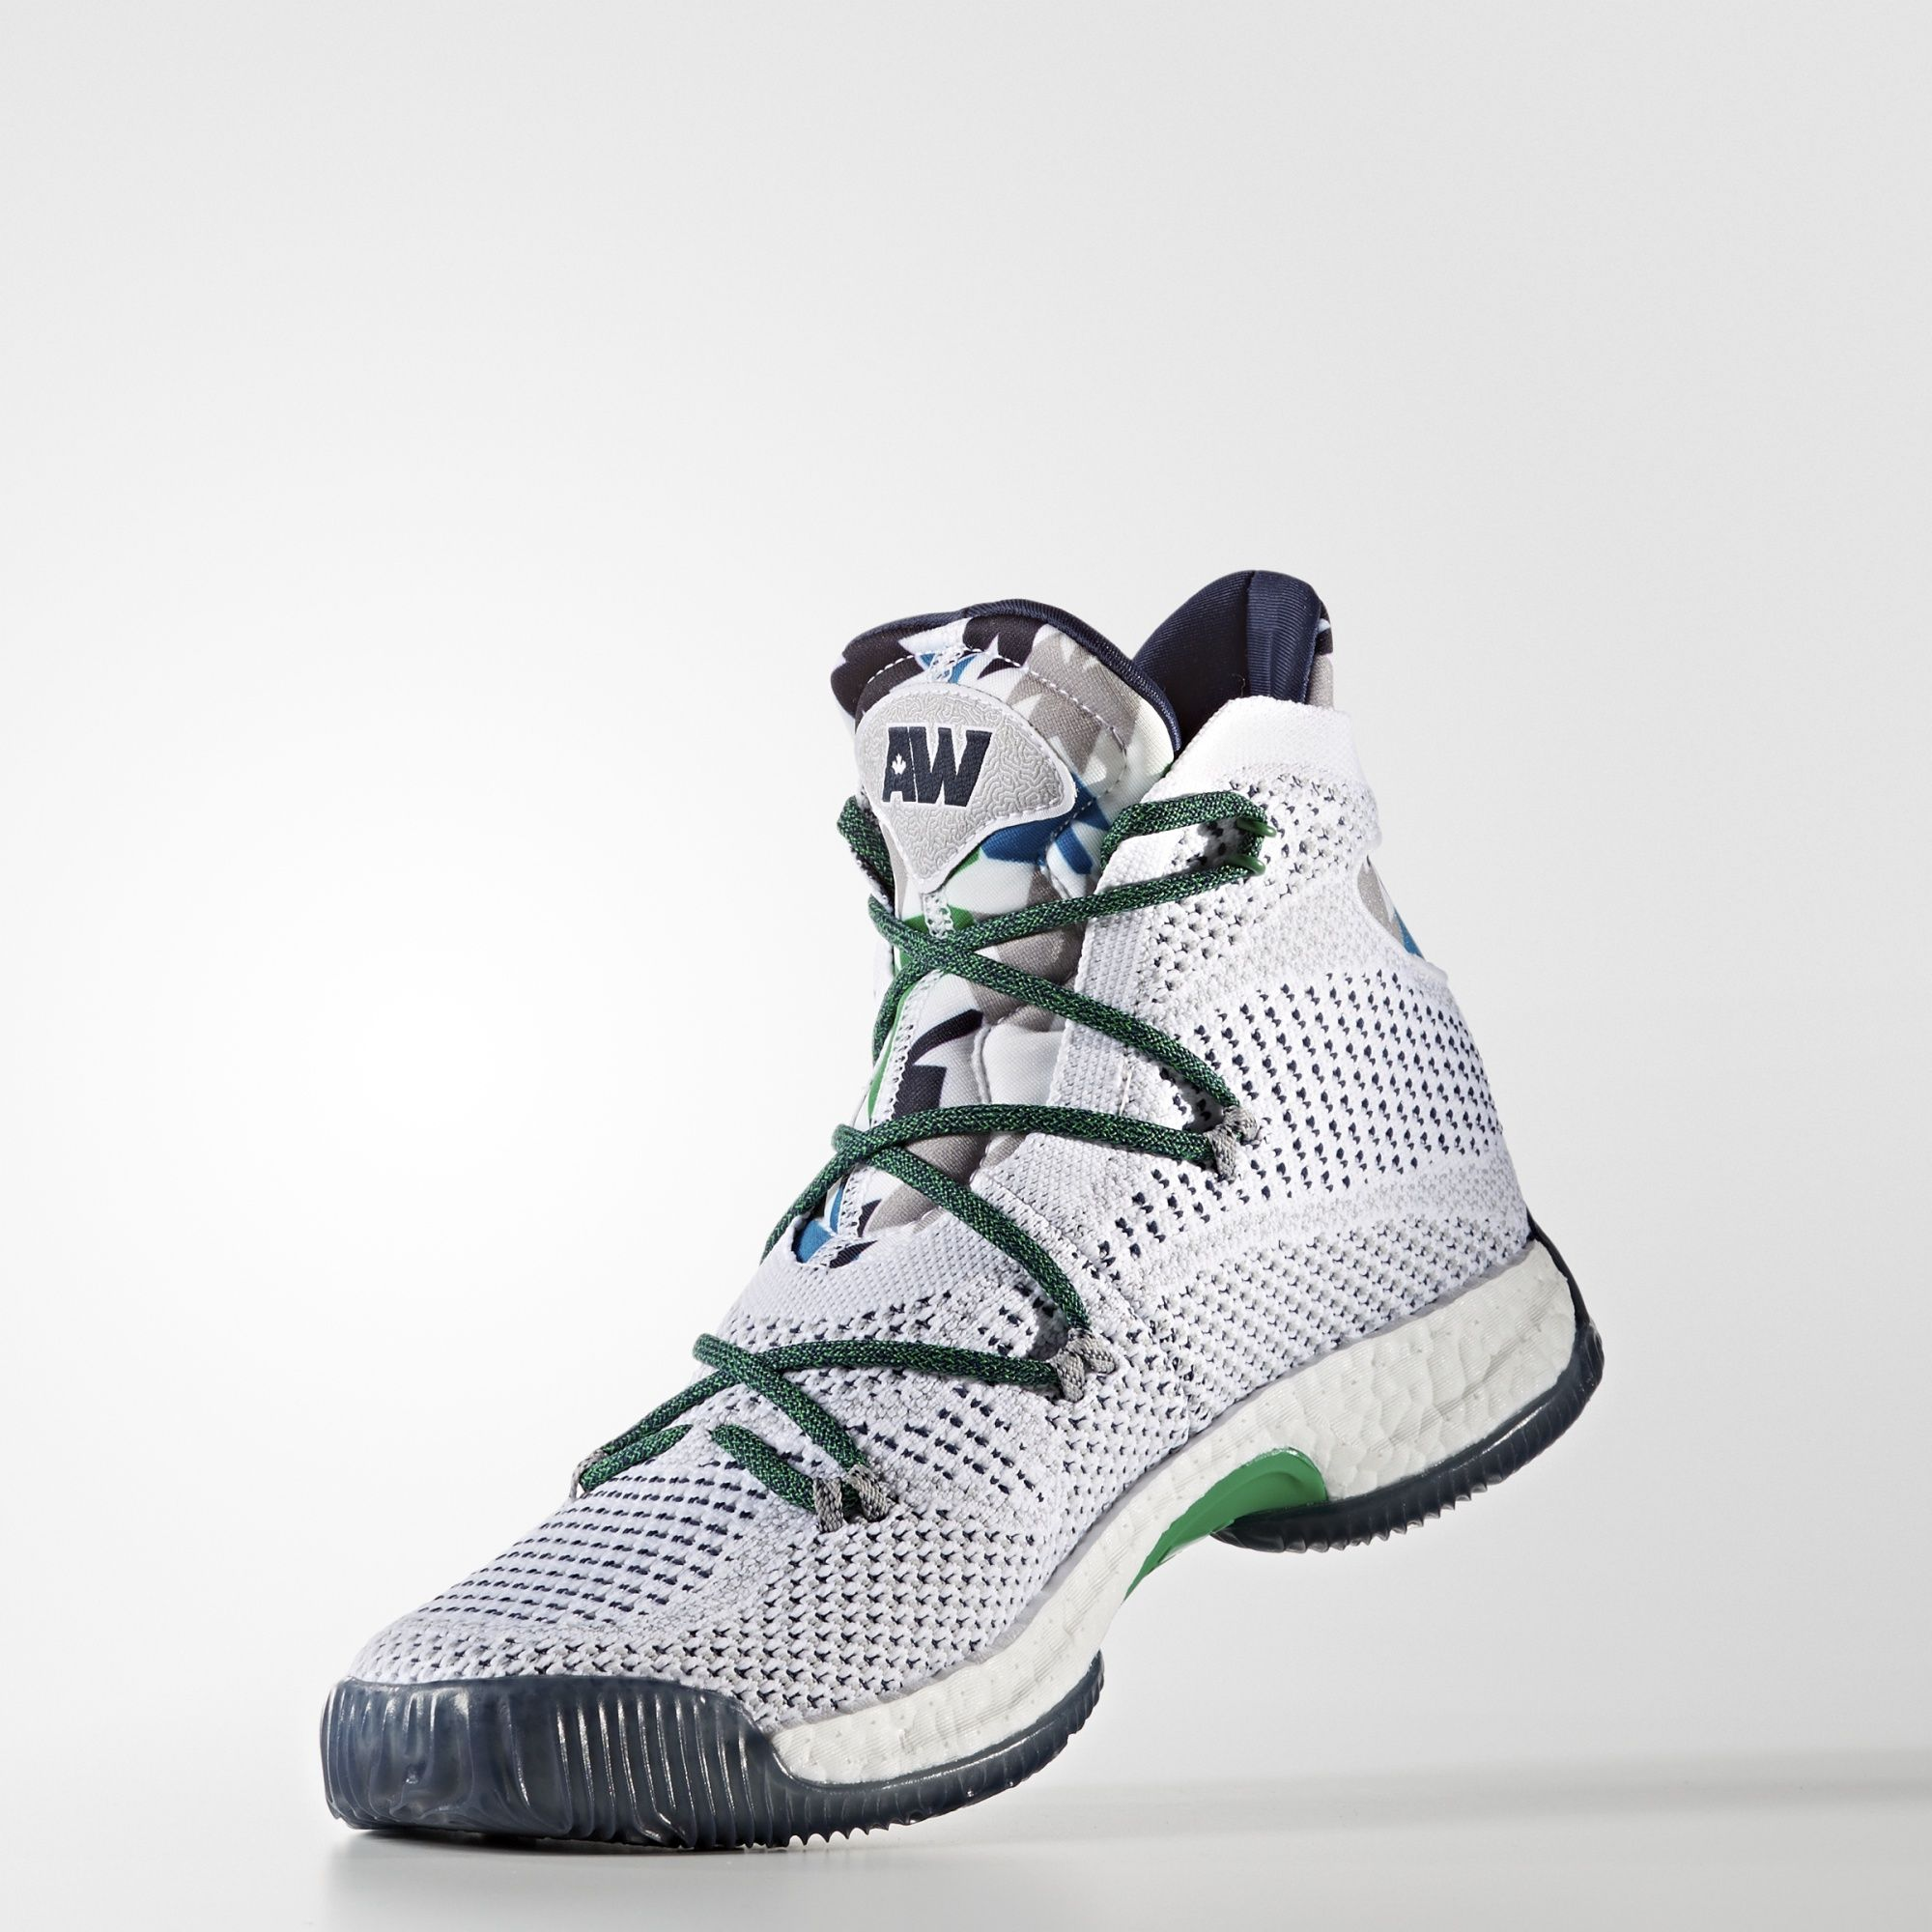 the-andrew-wiggins-pe-of-the-adidas-crazy-explosive-is-available-now-4